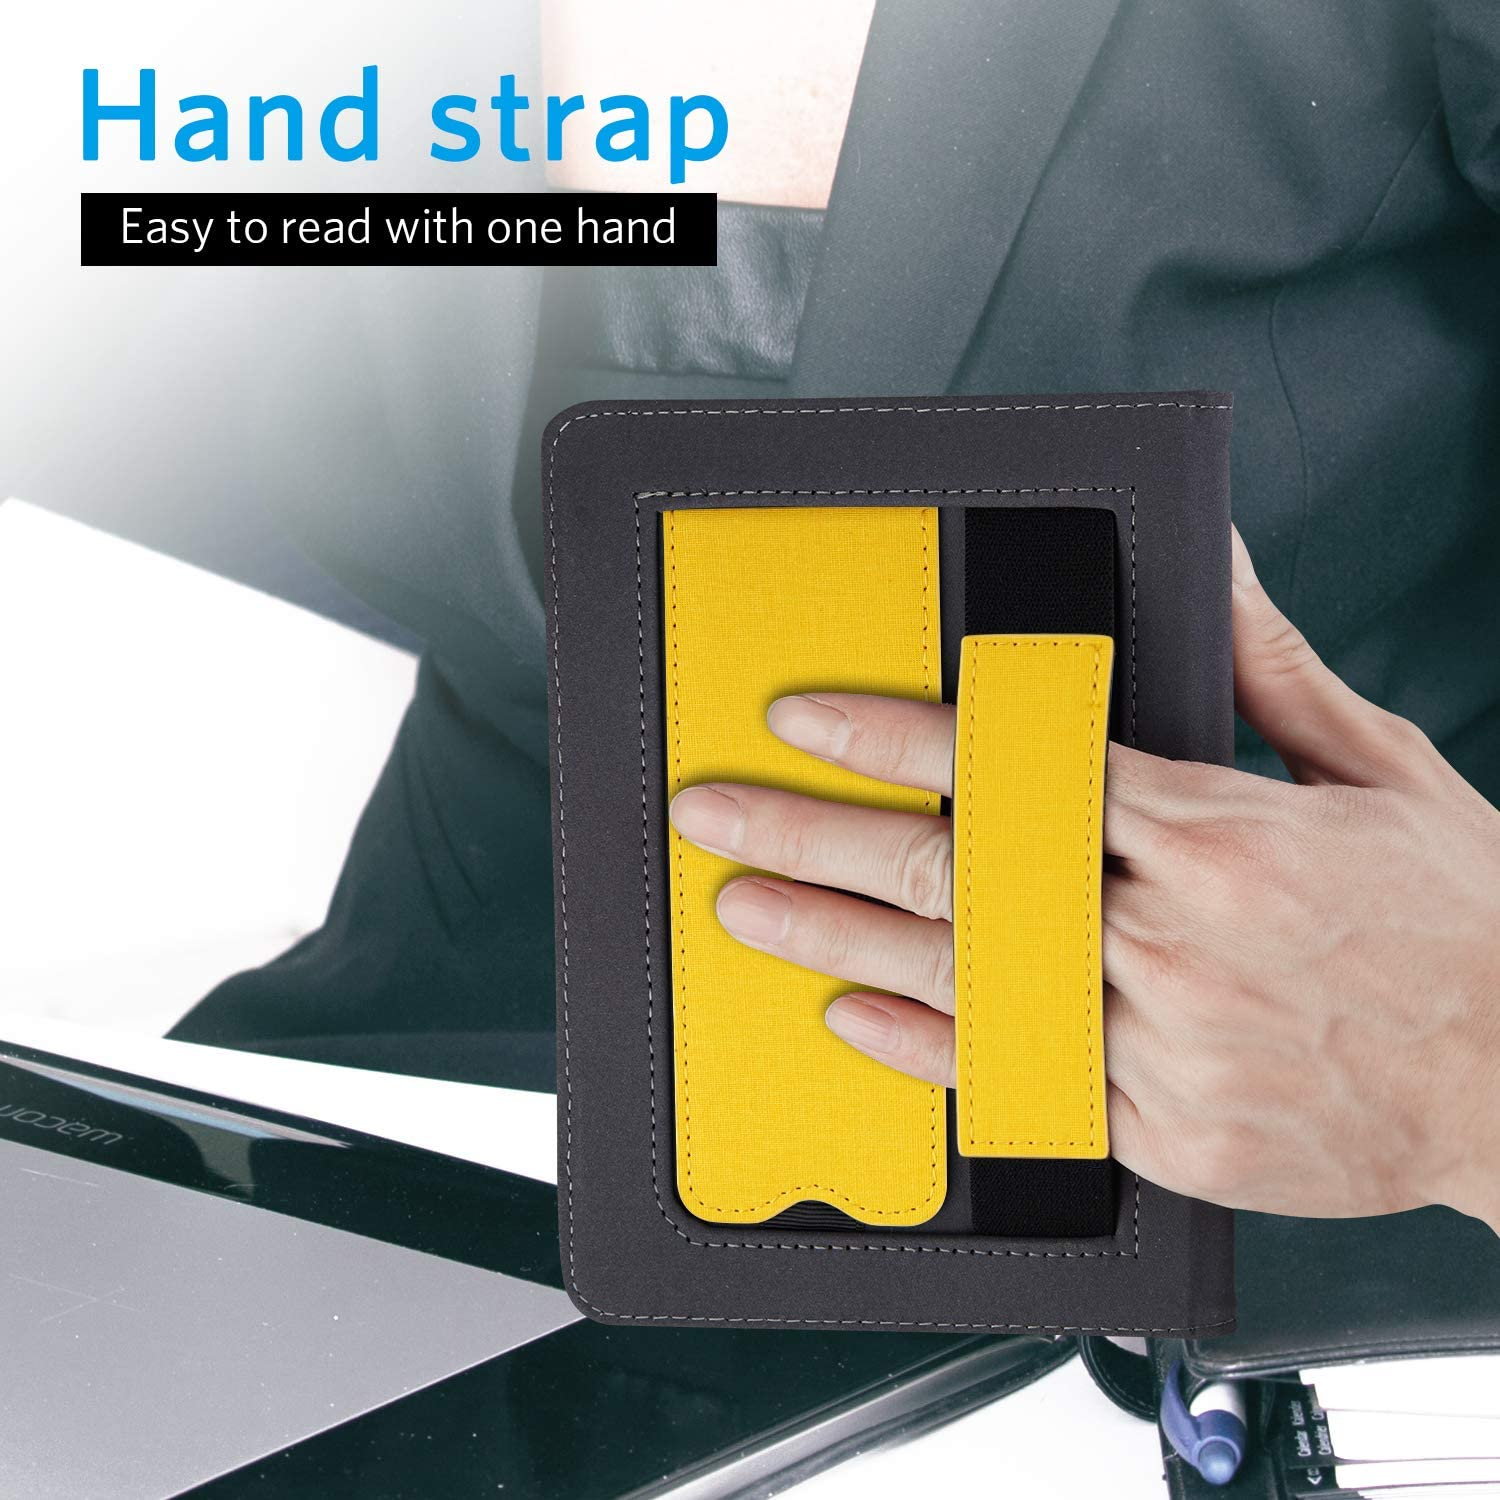 ONLY Fits All New Kindle Paperwhite 10th Generation 2018 Released,Jeans Yellow Hand Strap Feature CoBak Kindle Paperwhite Case with Stand Durable PU Leather Smart Cover with Auto Sleep Wake